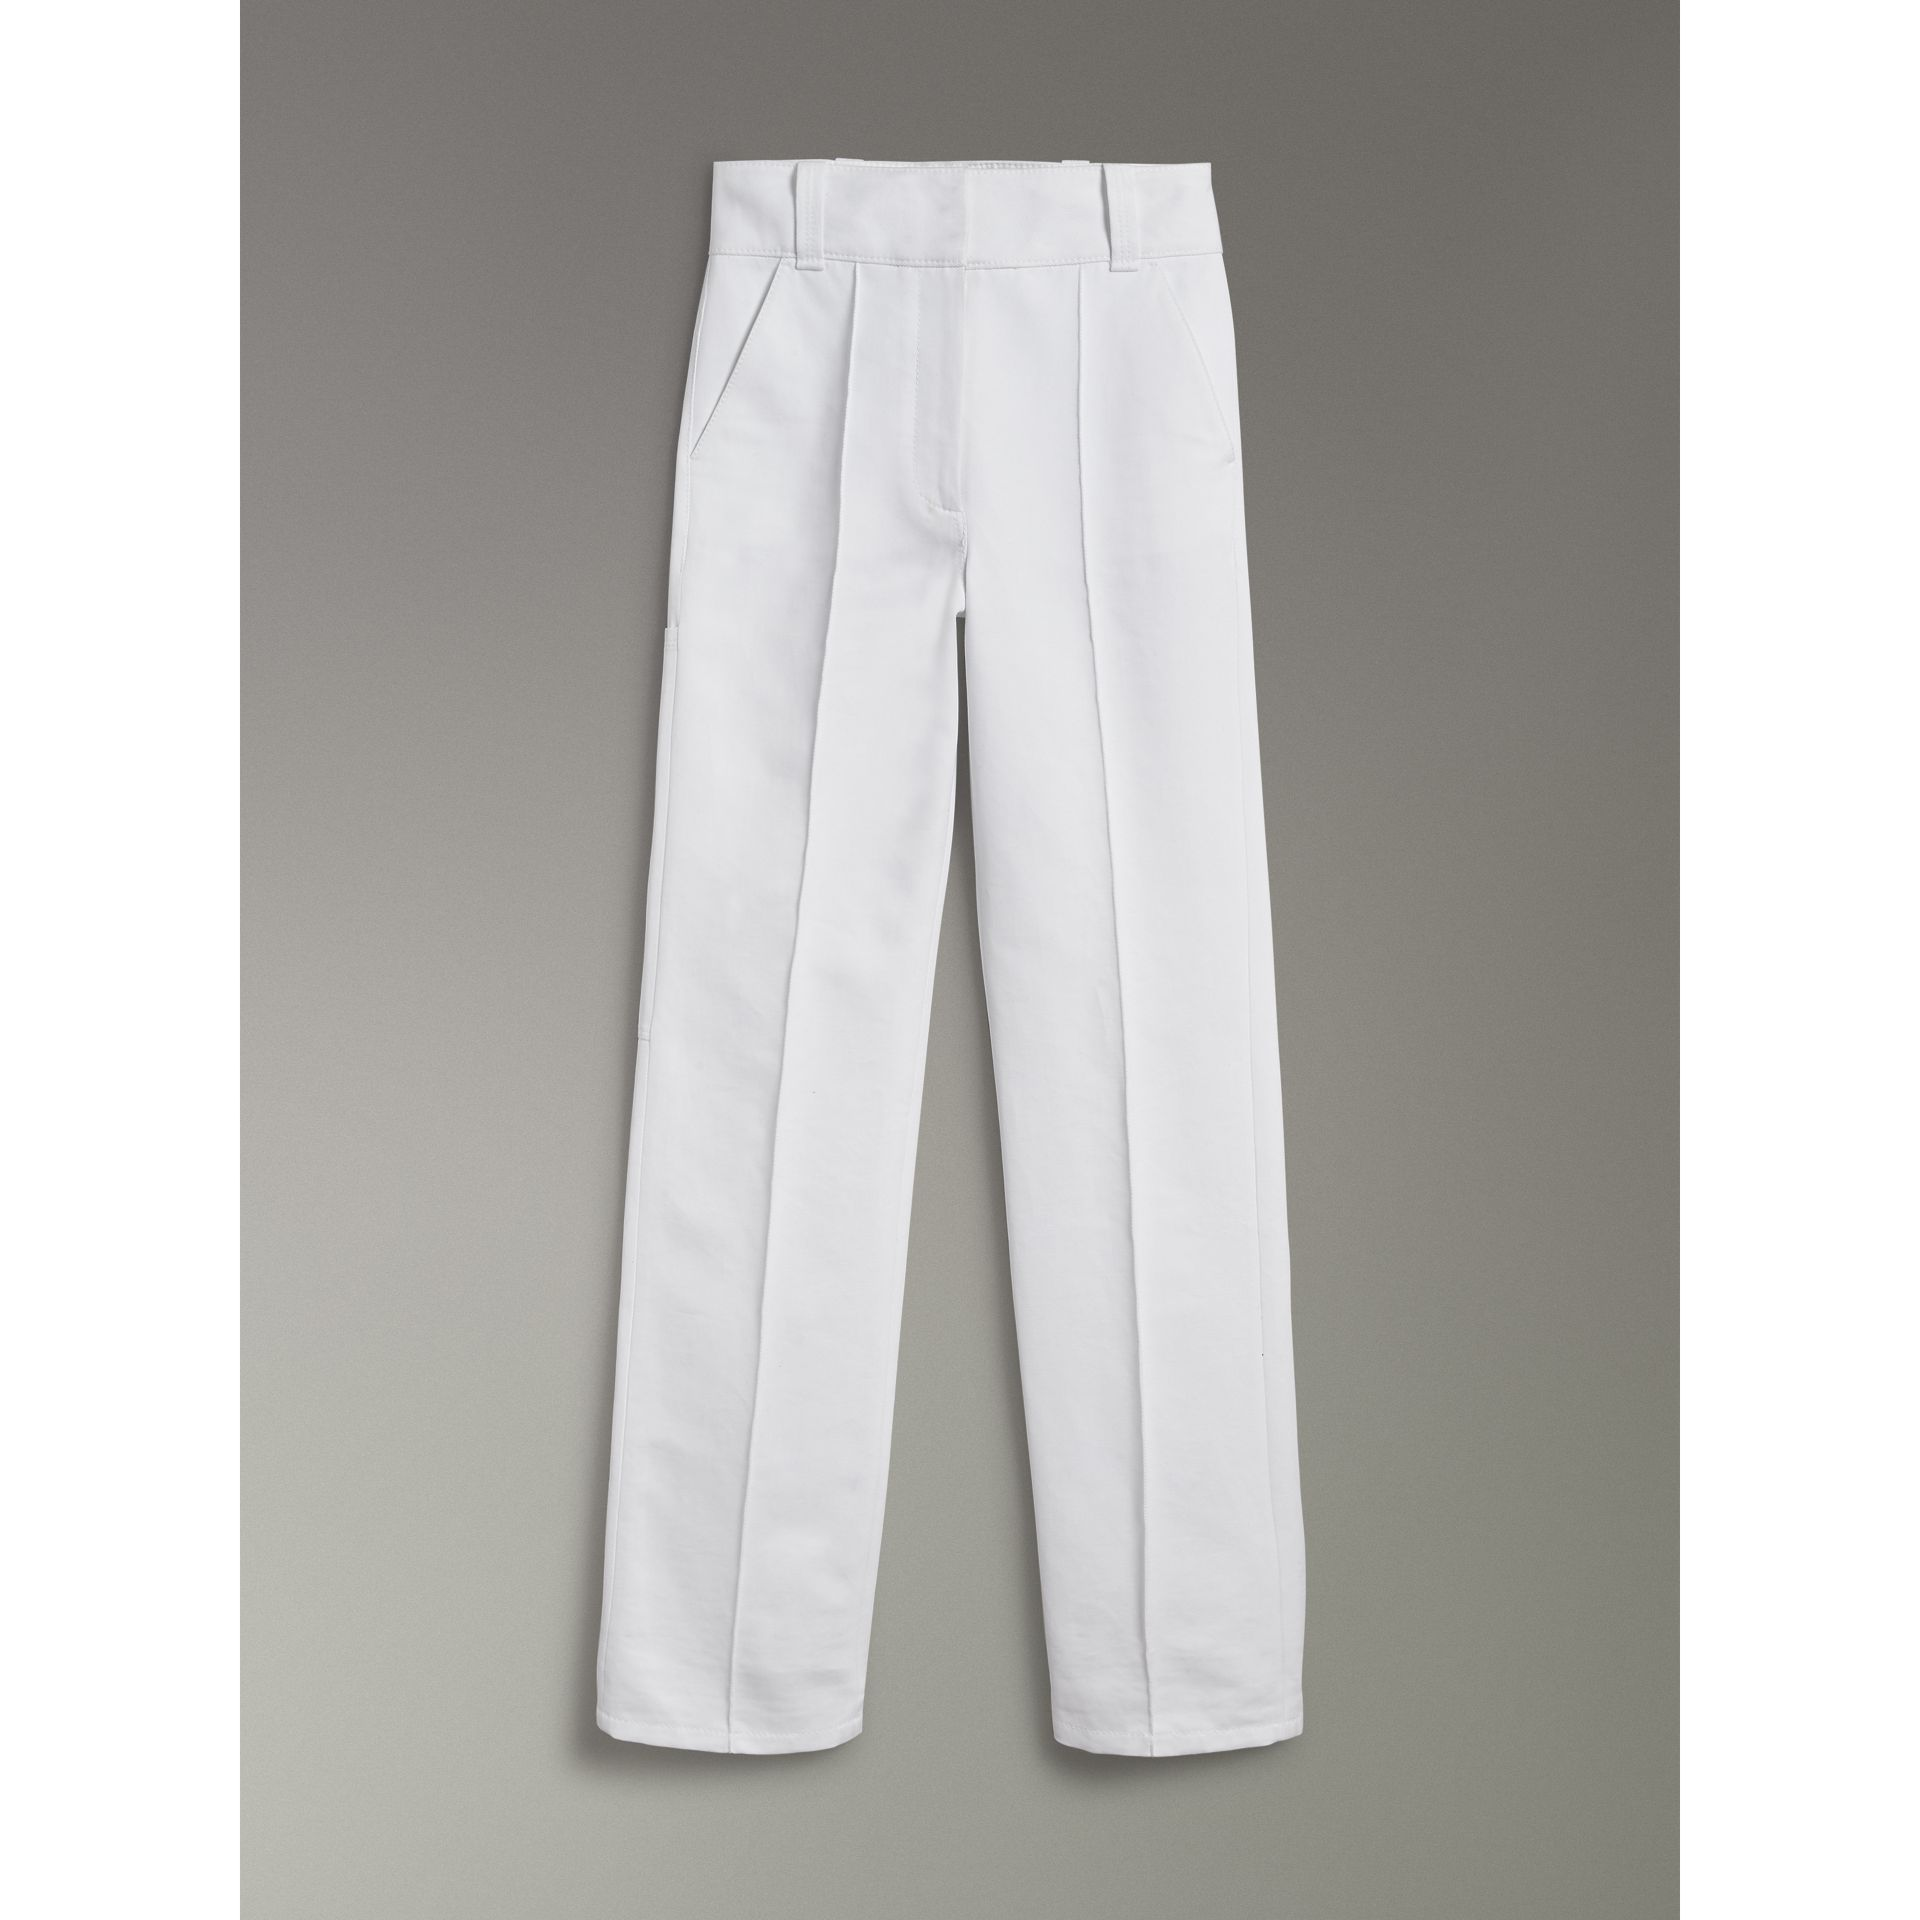 Cotton Drill High-waisted Trousers in White - Women | Burberry - gallery image 3